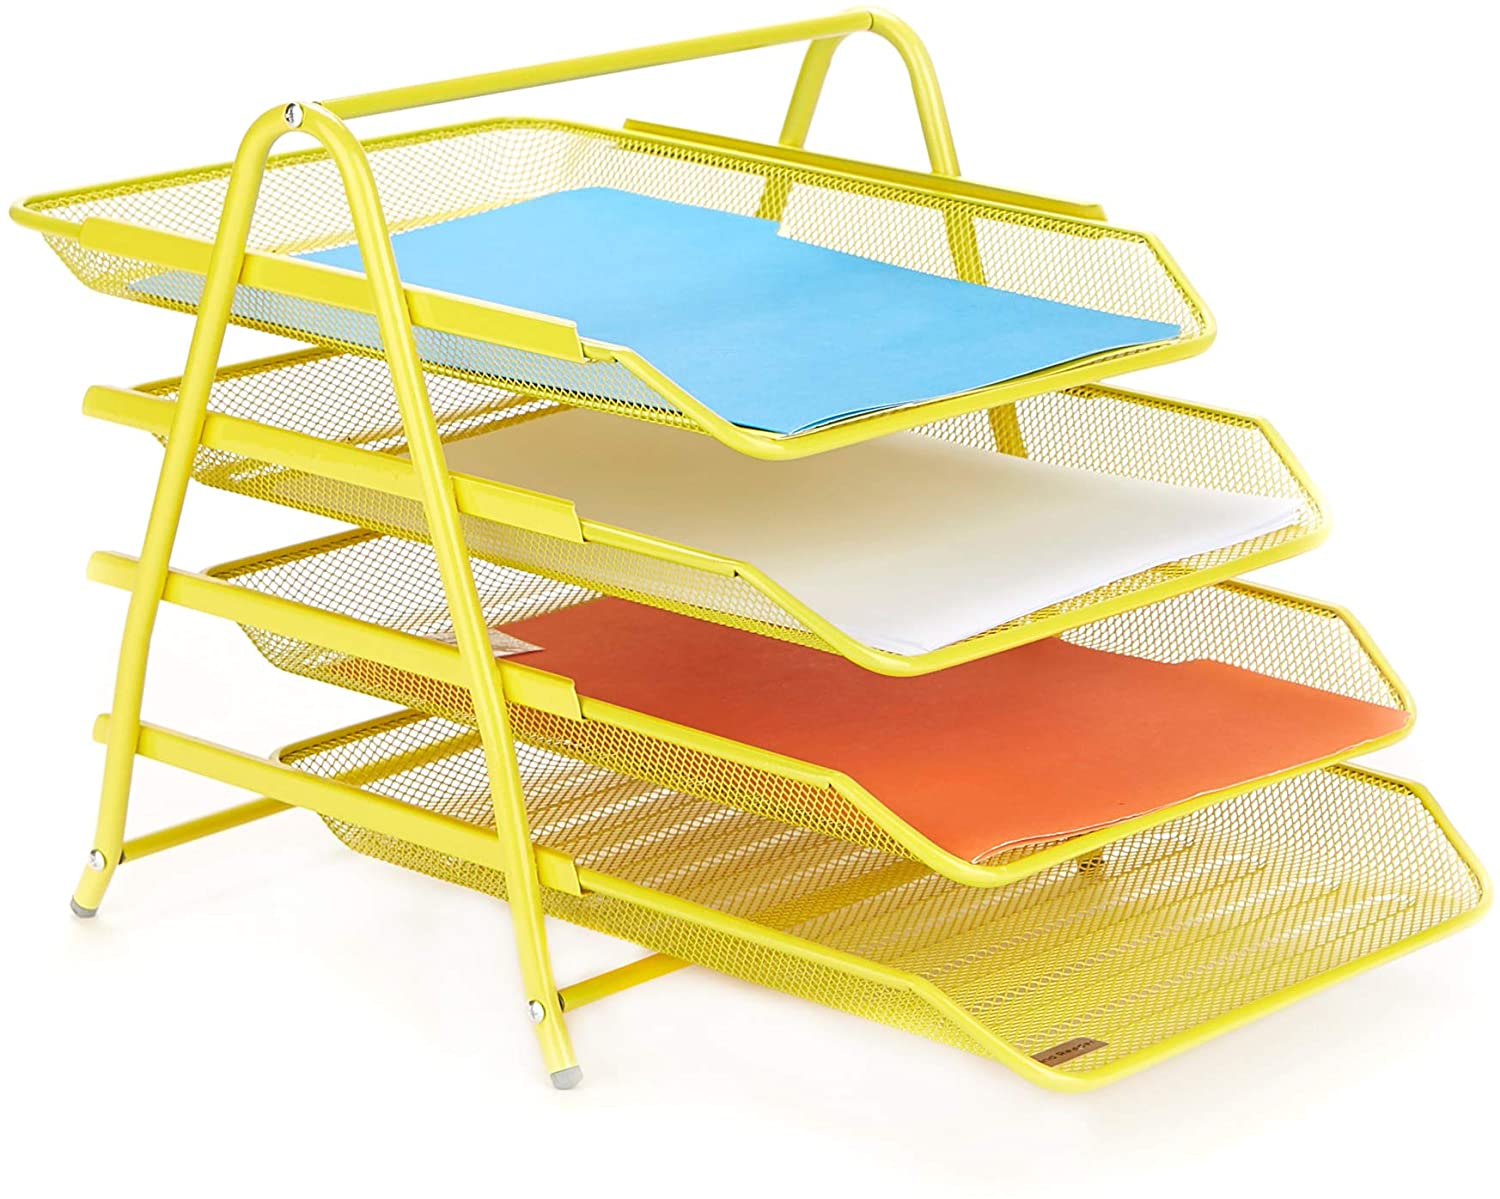 Mind Reader 4TPAPER-YLW 4 Tier Letter Tray Pull Out Drawer Organizer, Folders, Files, Documents, Mail, Yellow